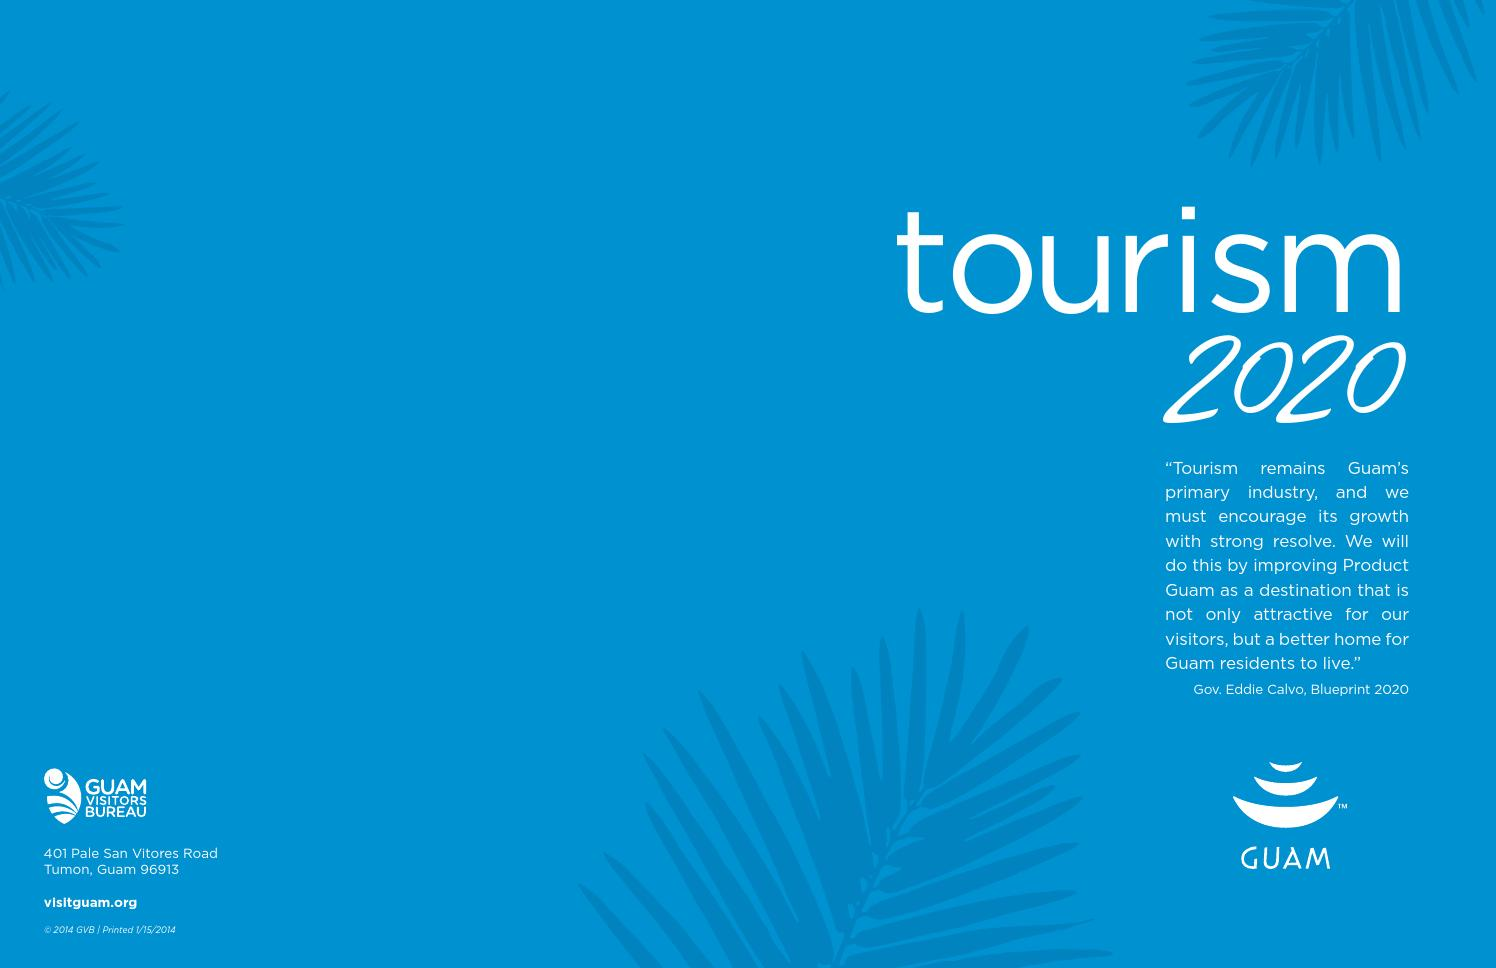 Guam tourism 2020 strategic plan by guam visitors bureau issuu malvernweather Image collections